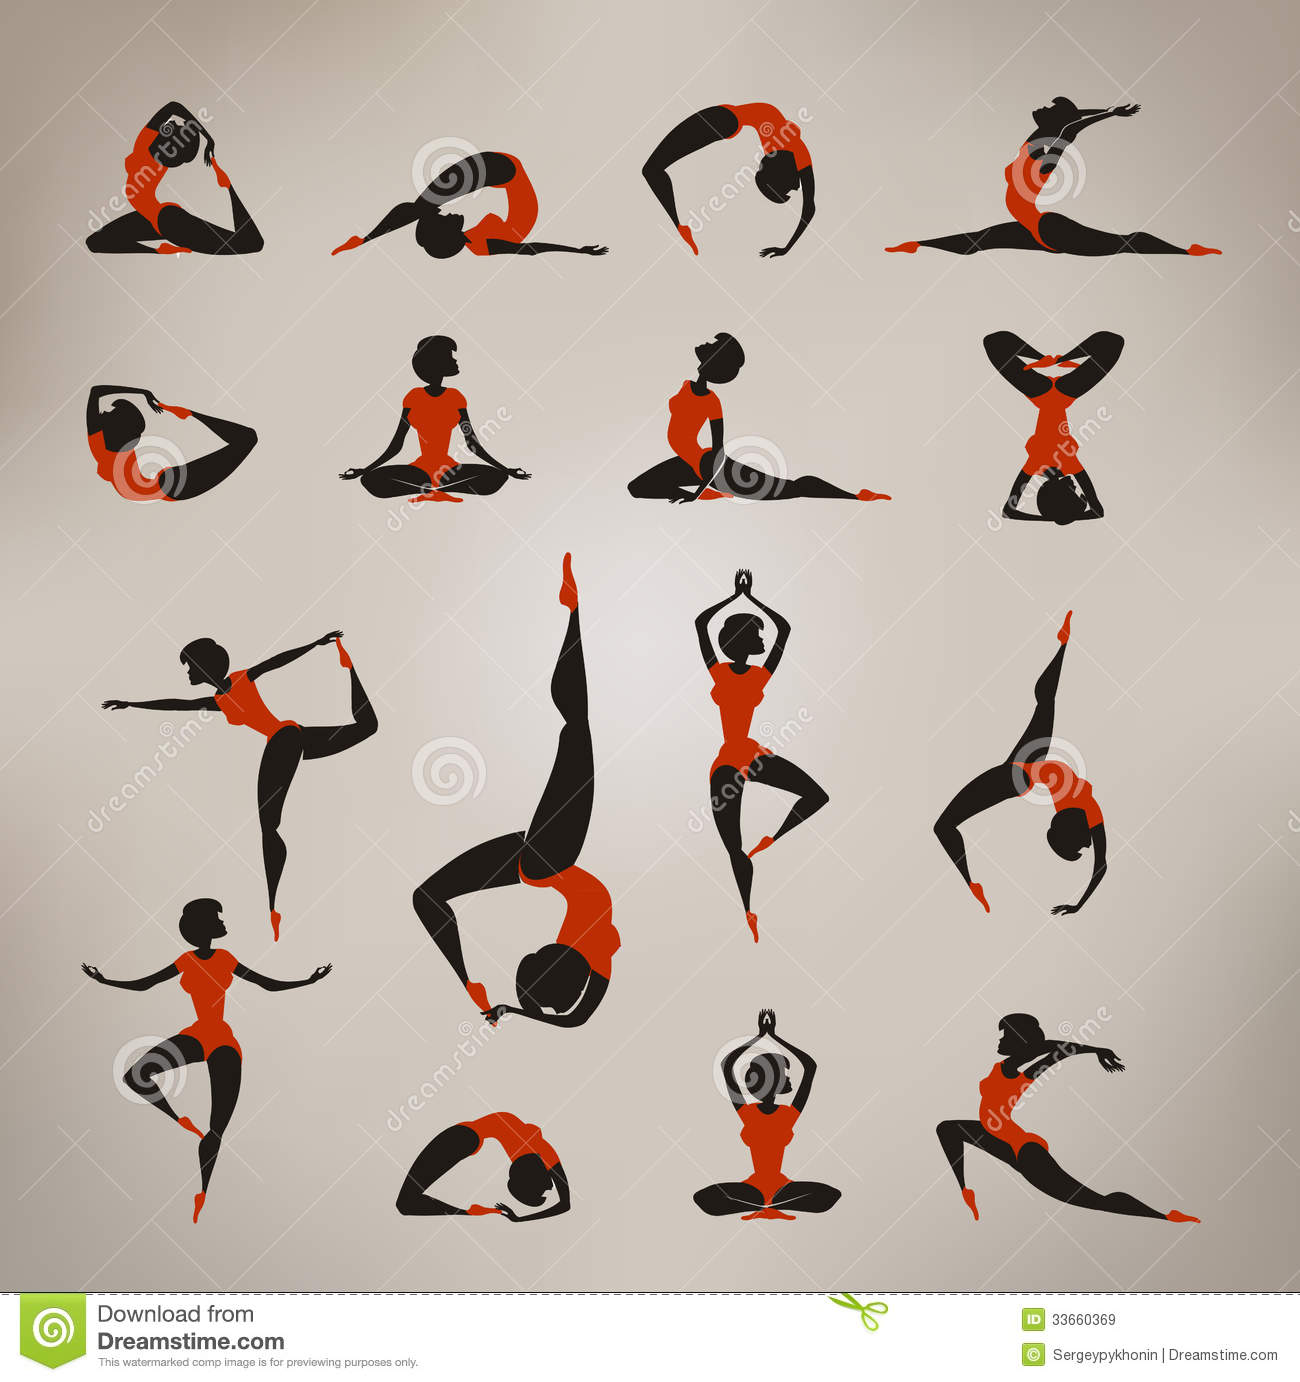 Yoga. Vintage Icons Royalty Free Stock Images - Image: 33660369